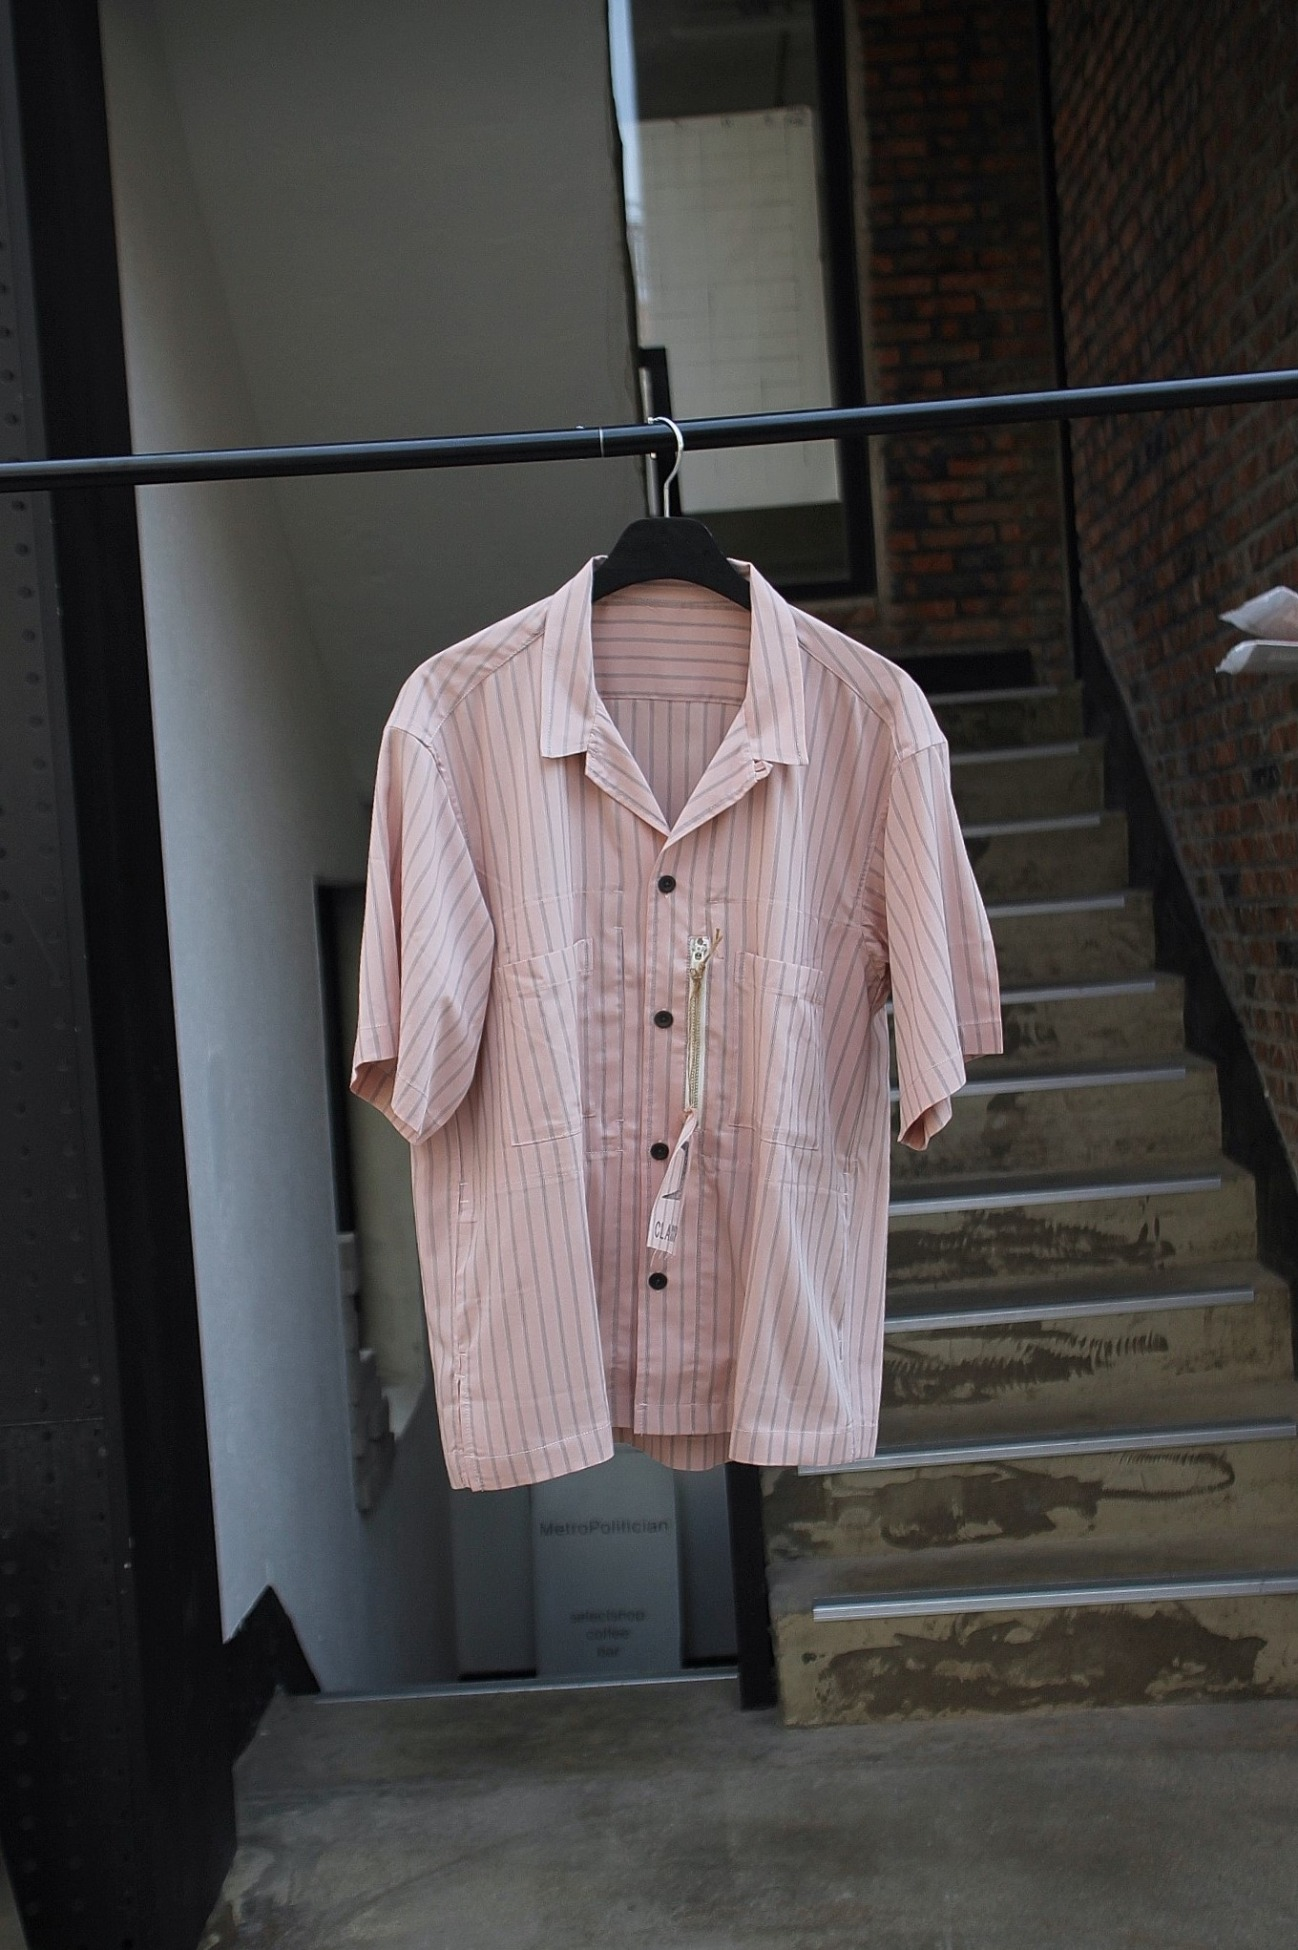 [CLAMP] 6 Pocket S/S Shirt - Pink